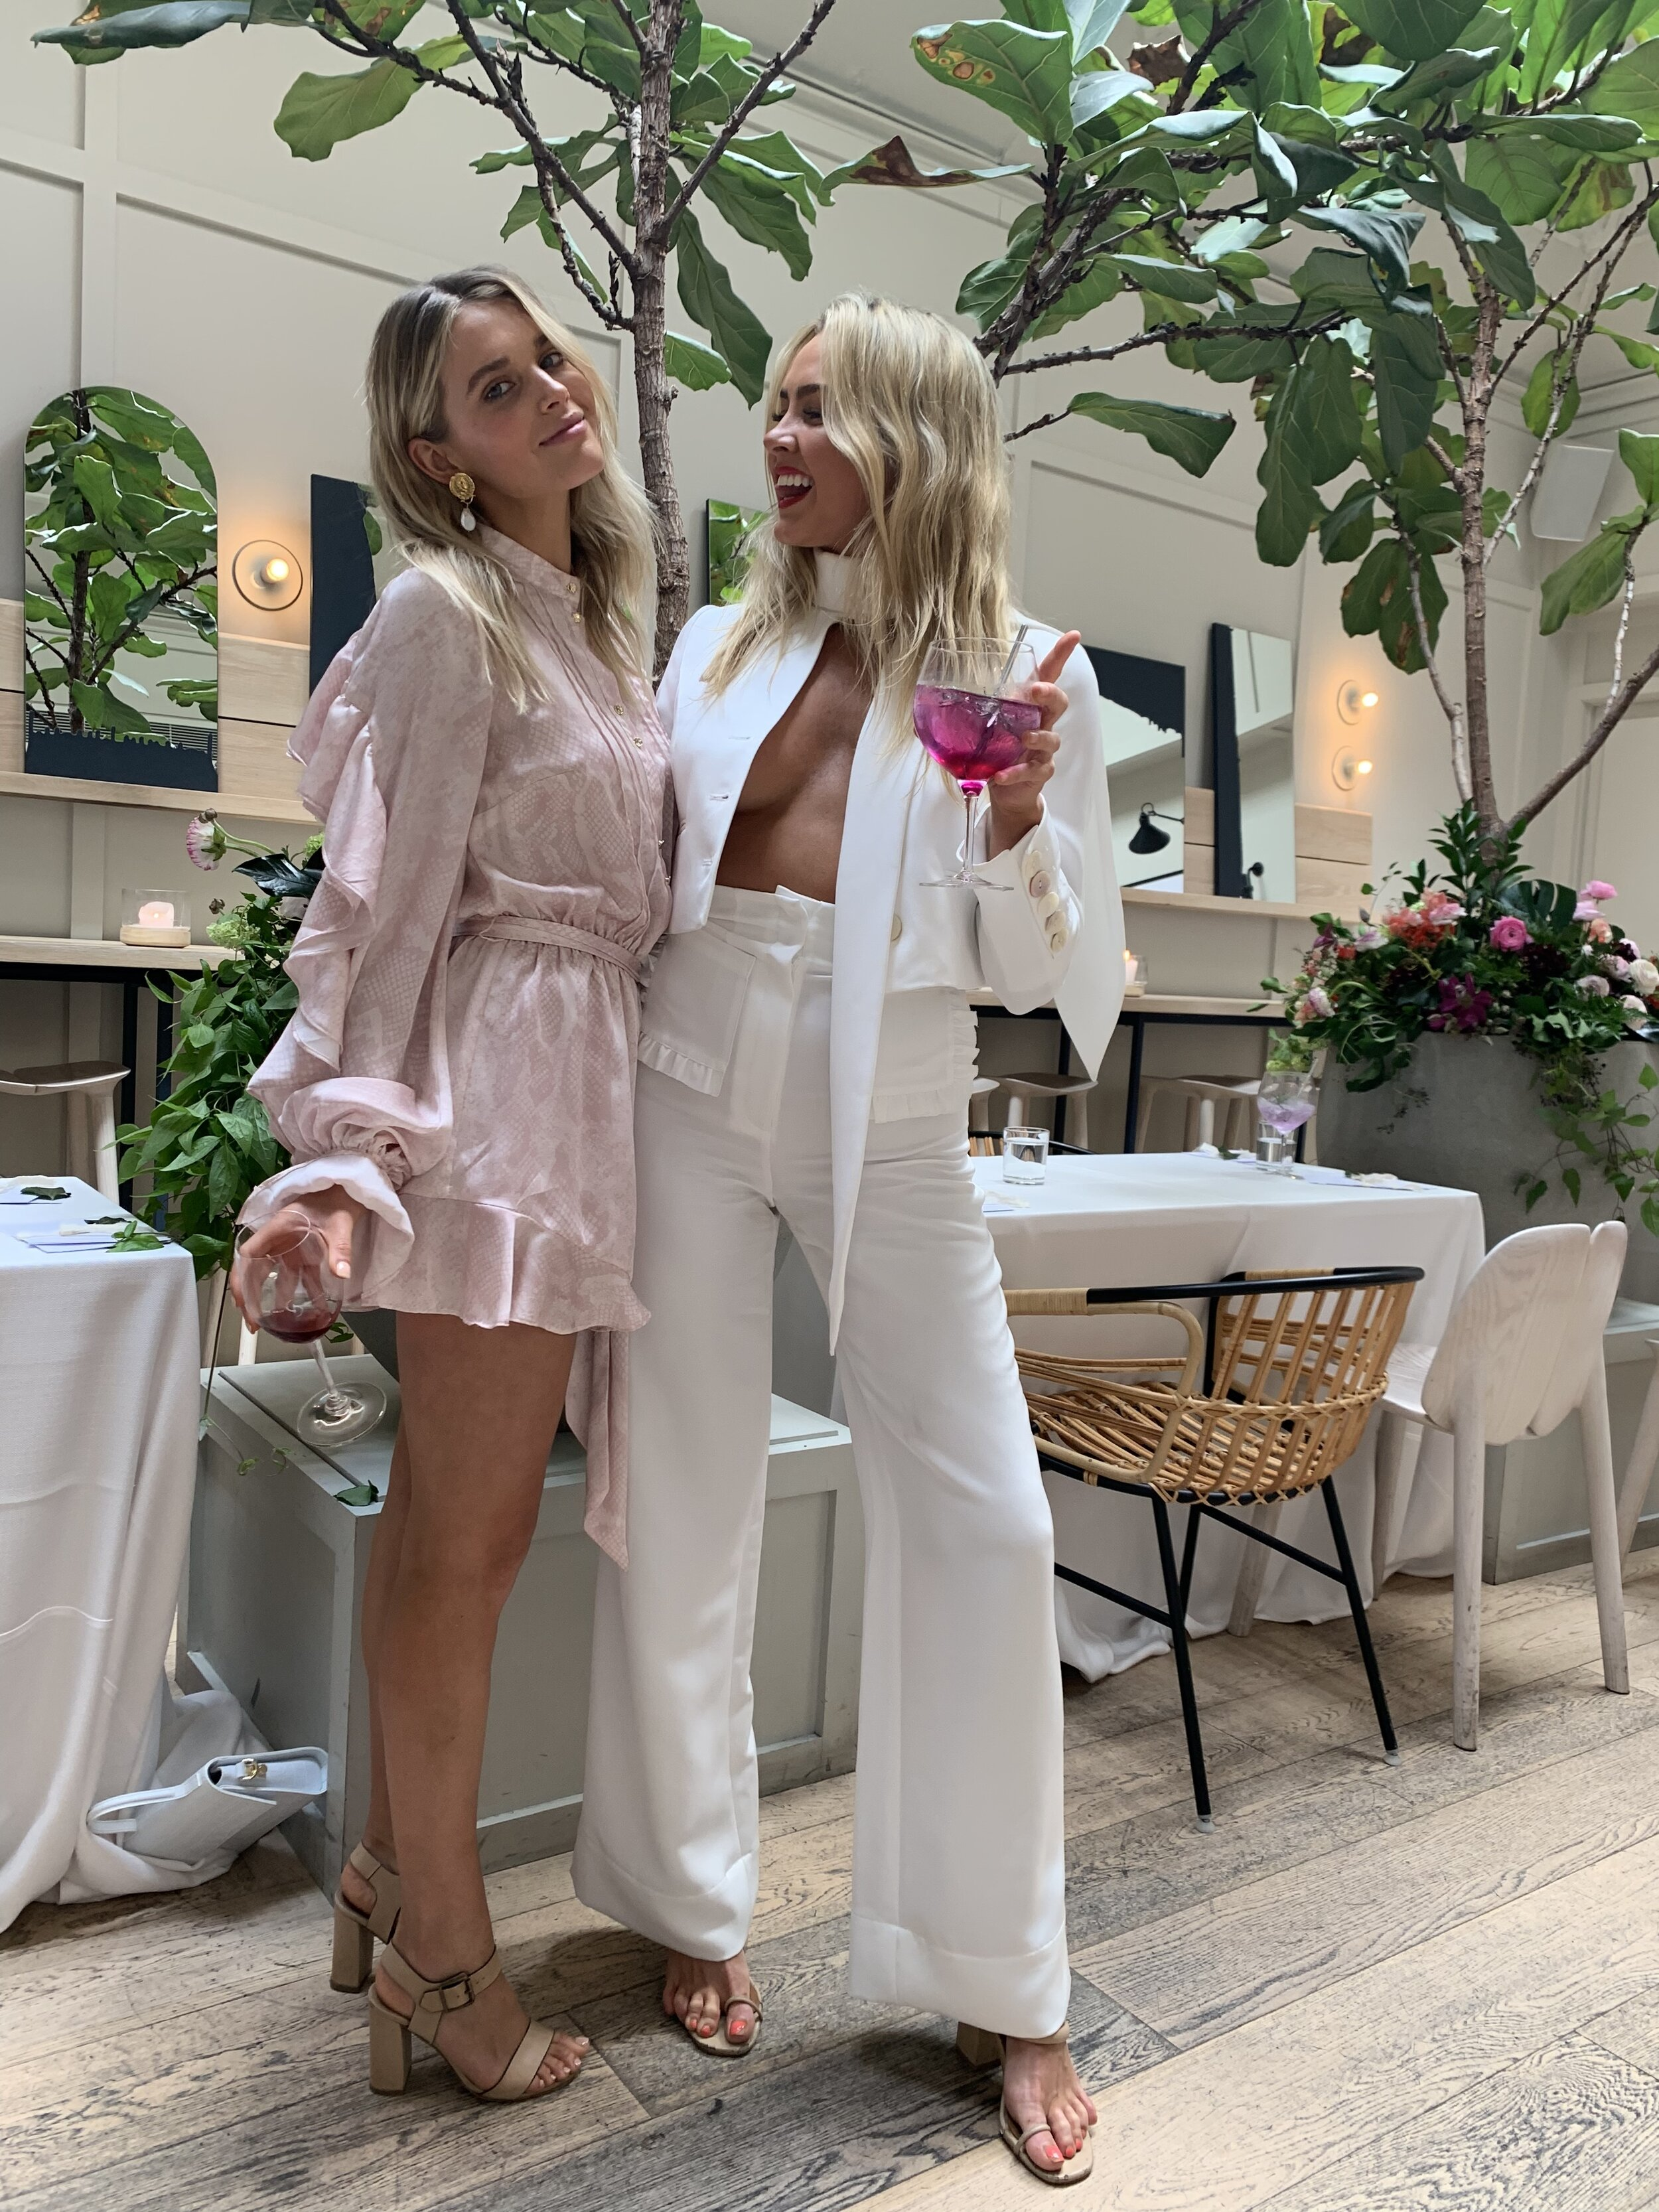 @ebonylet (left) wearing Pearl Playsuit and (right) @nikkiholdennn wearing the Entrancing Jacket and Pant